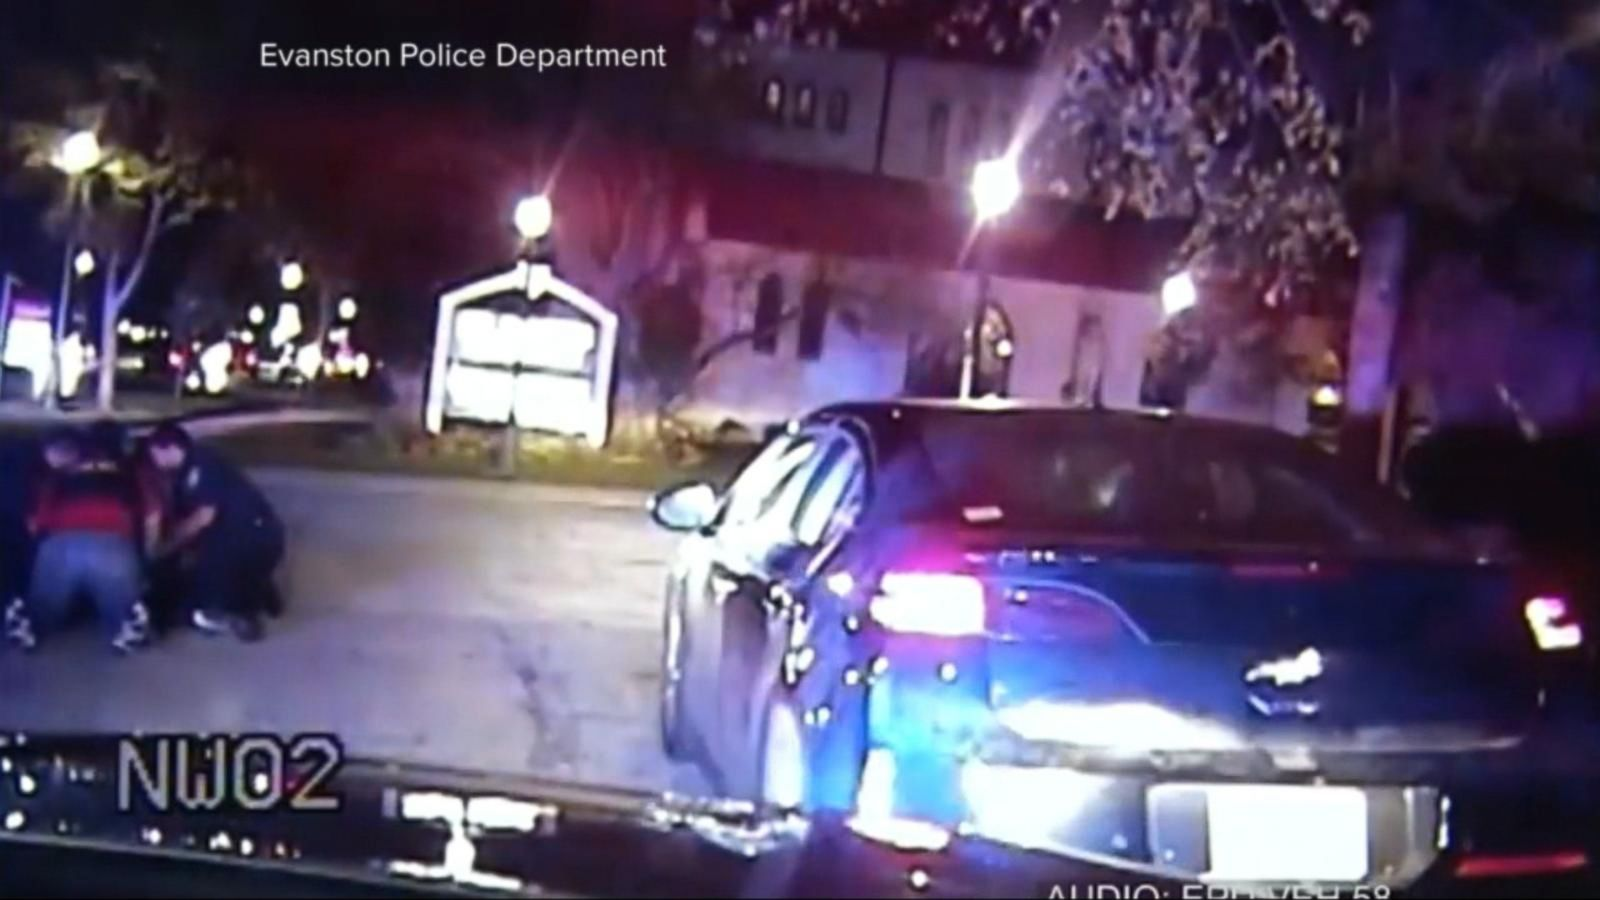 VIDEO: Dashcam Video Shows Police Arresting Man for Stealing His Own Car